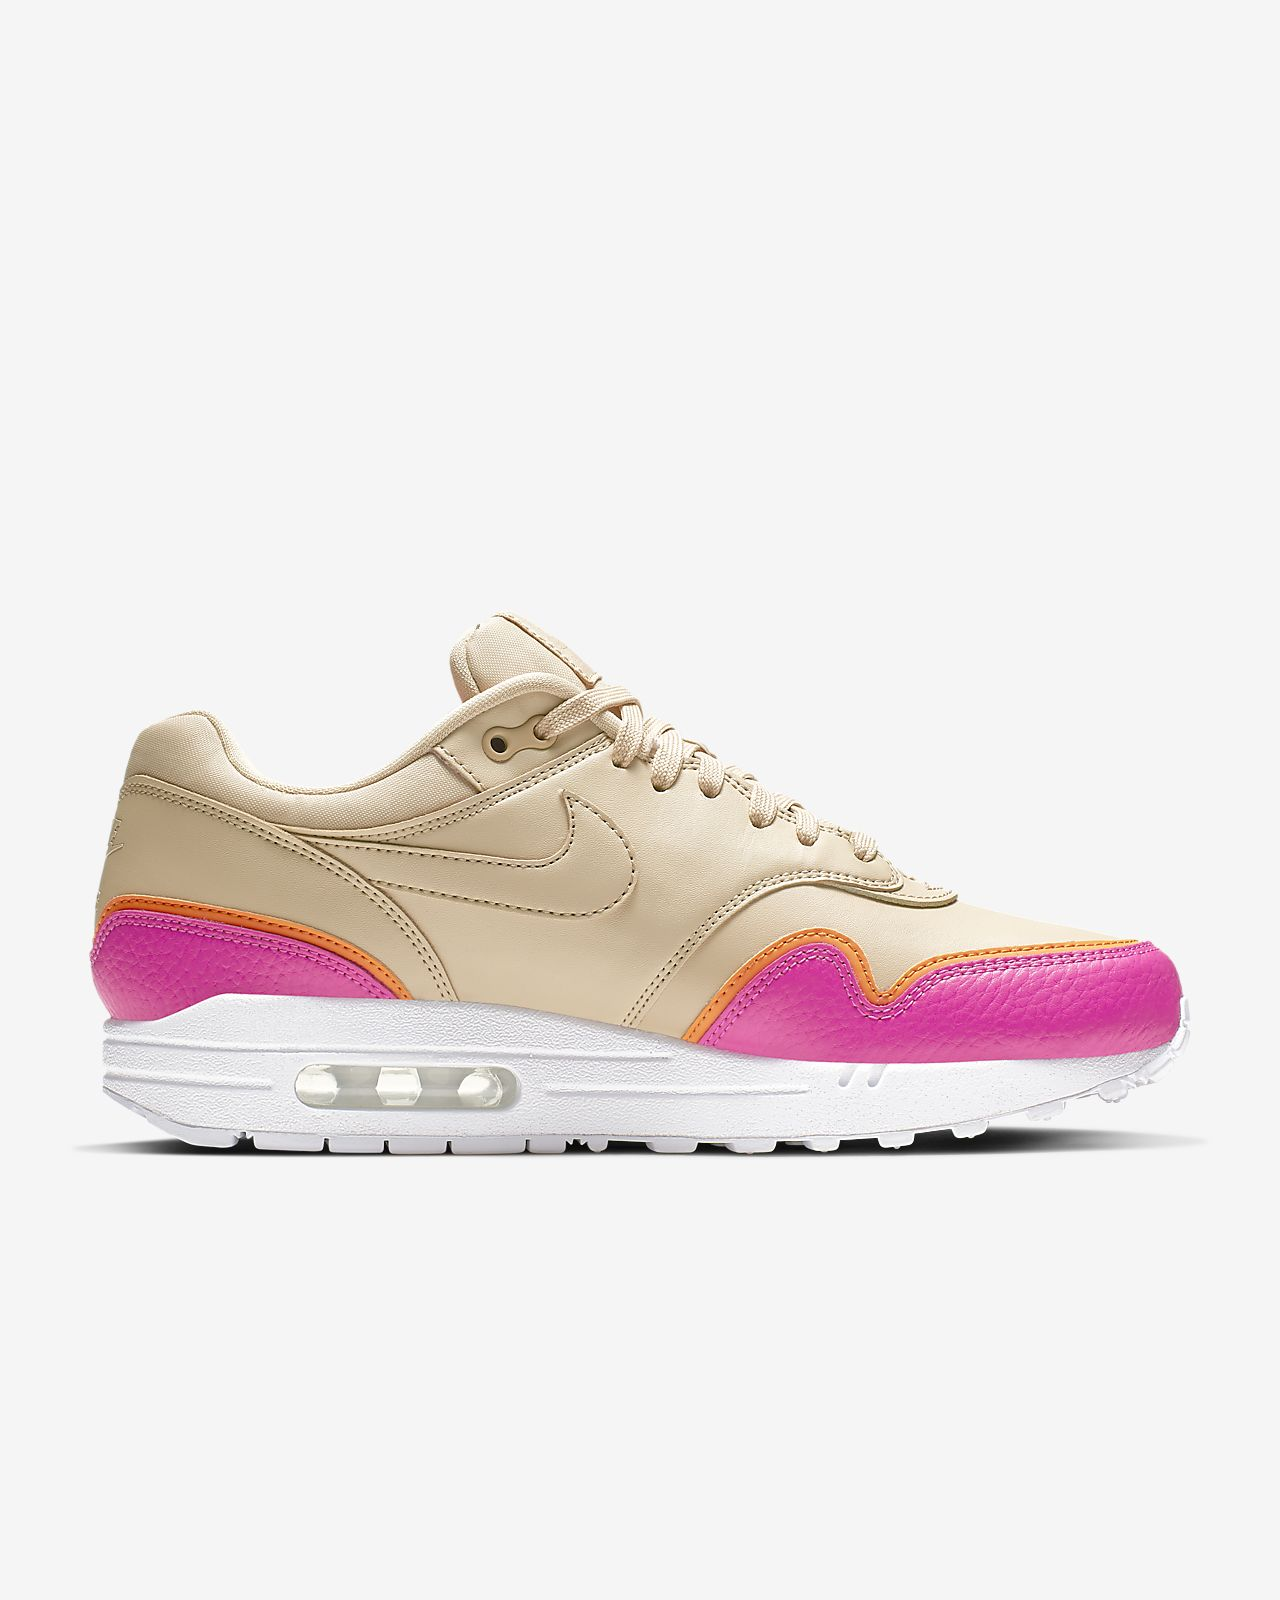 super popular dbcb3 59fa6 ... Nike Air Max 1 SE Women s Shoe